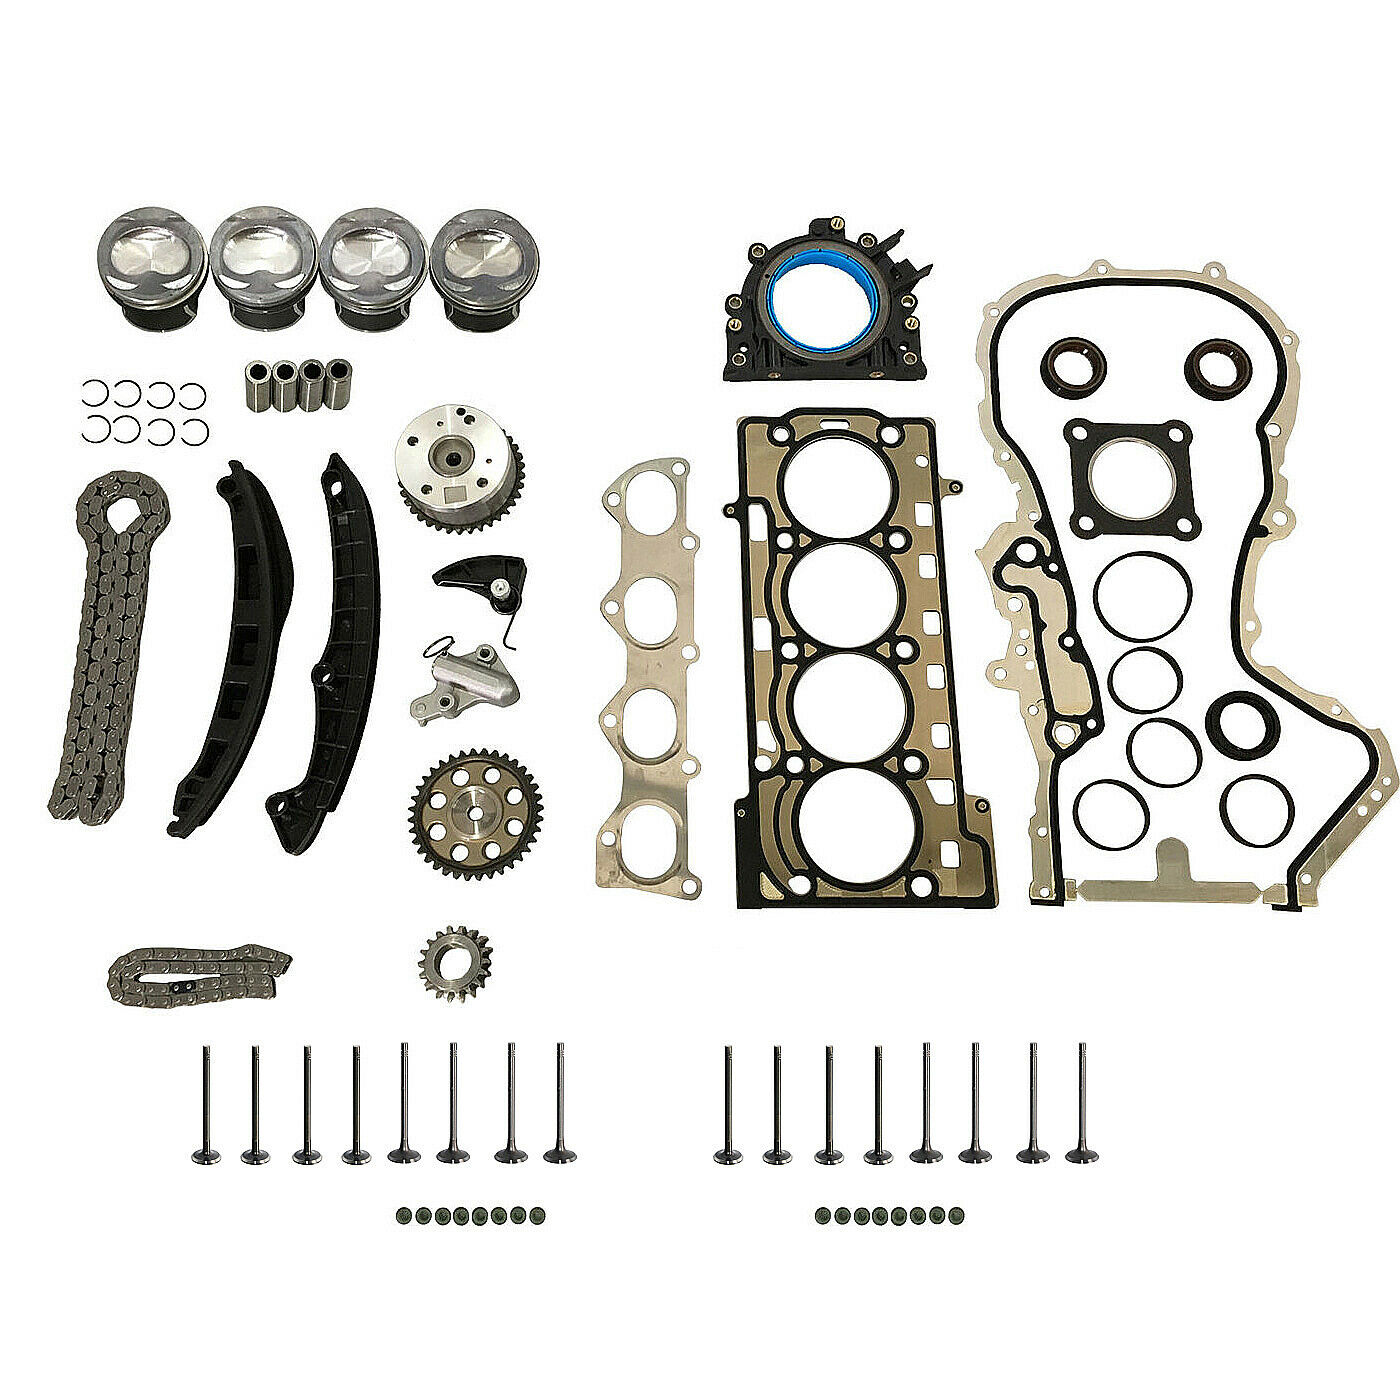 AP01 Engine Repair Kit Pistons STD + Timing Chain Kit + Head Gaskets For Audi A3 A1 VW EOS BEETLE SCIROCCO CC 1.4 TSI